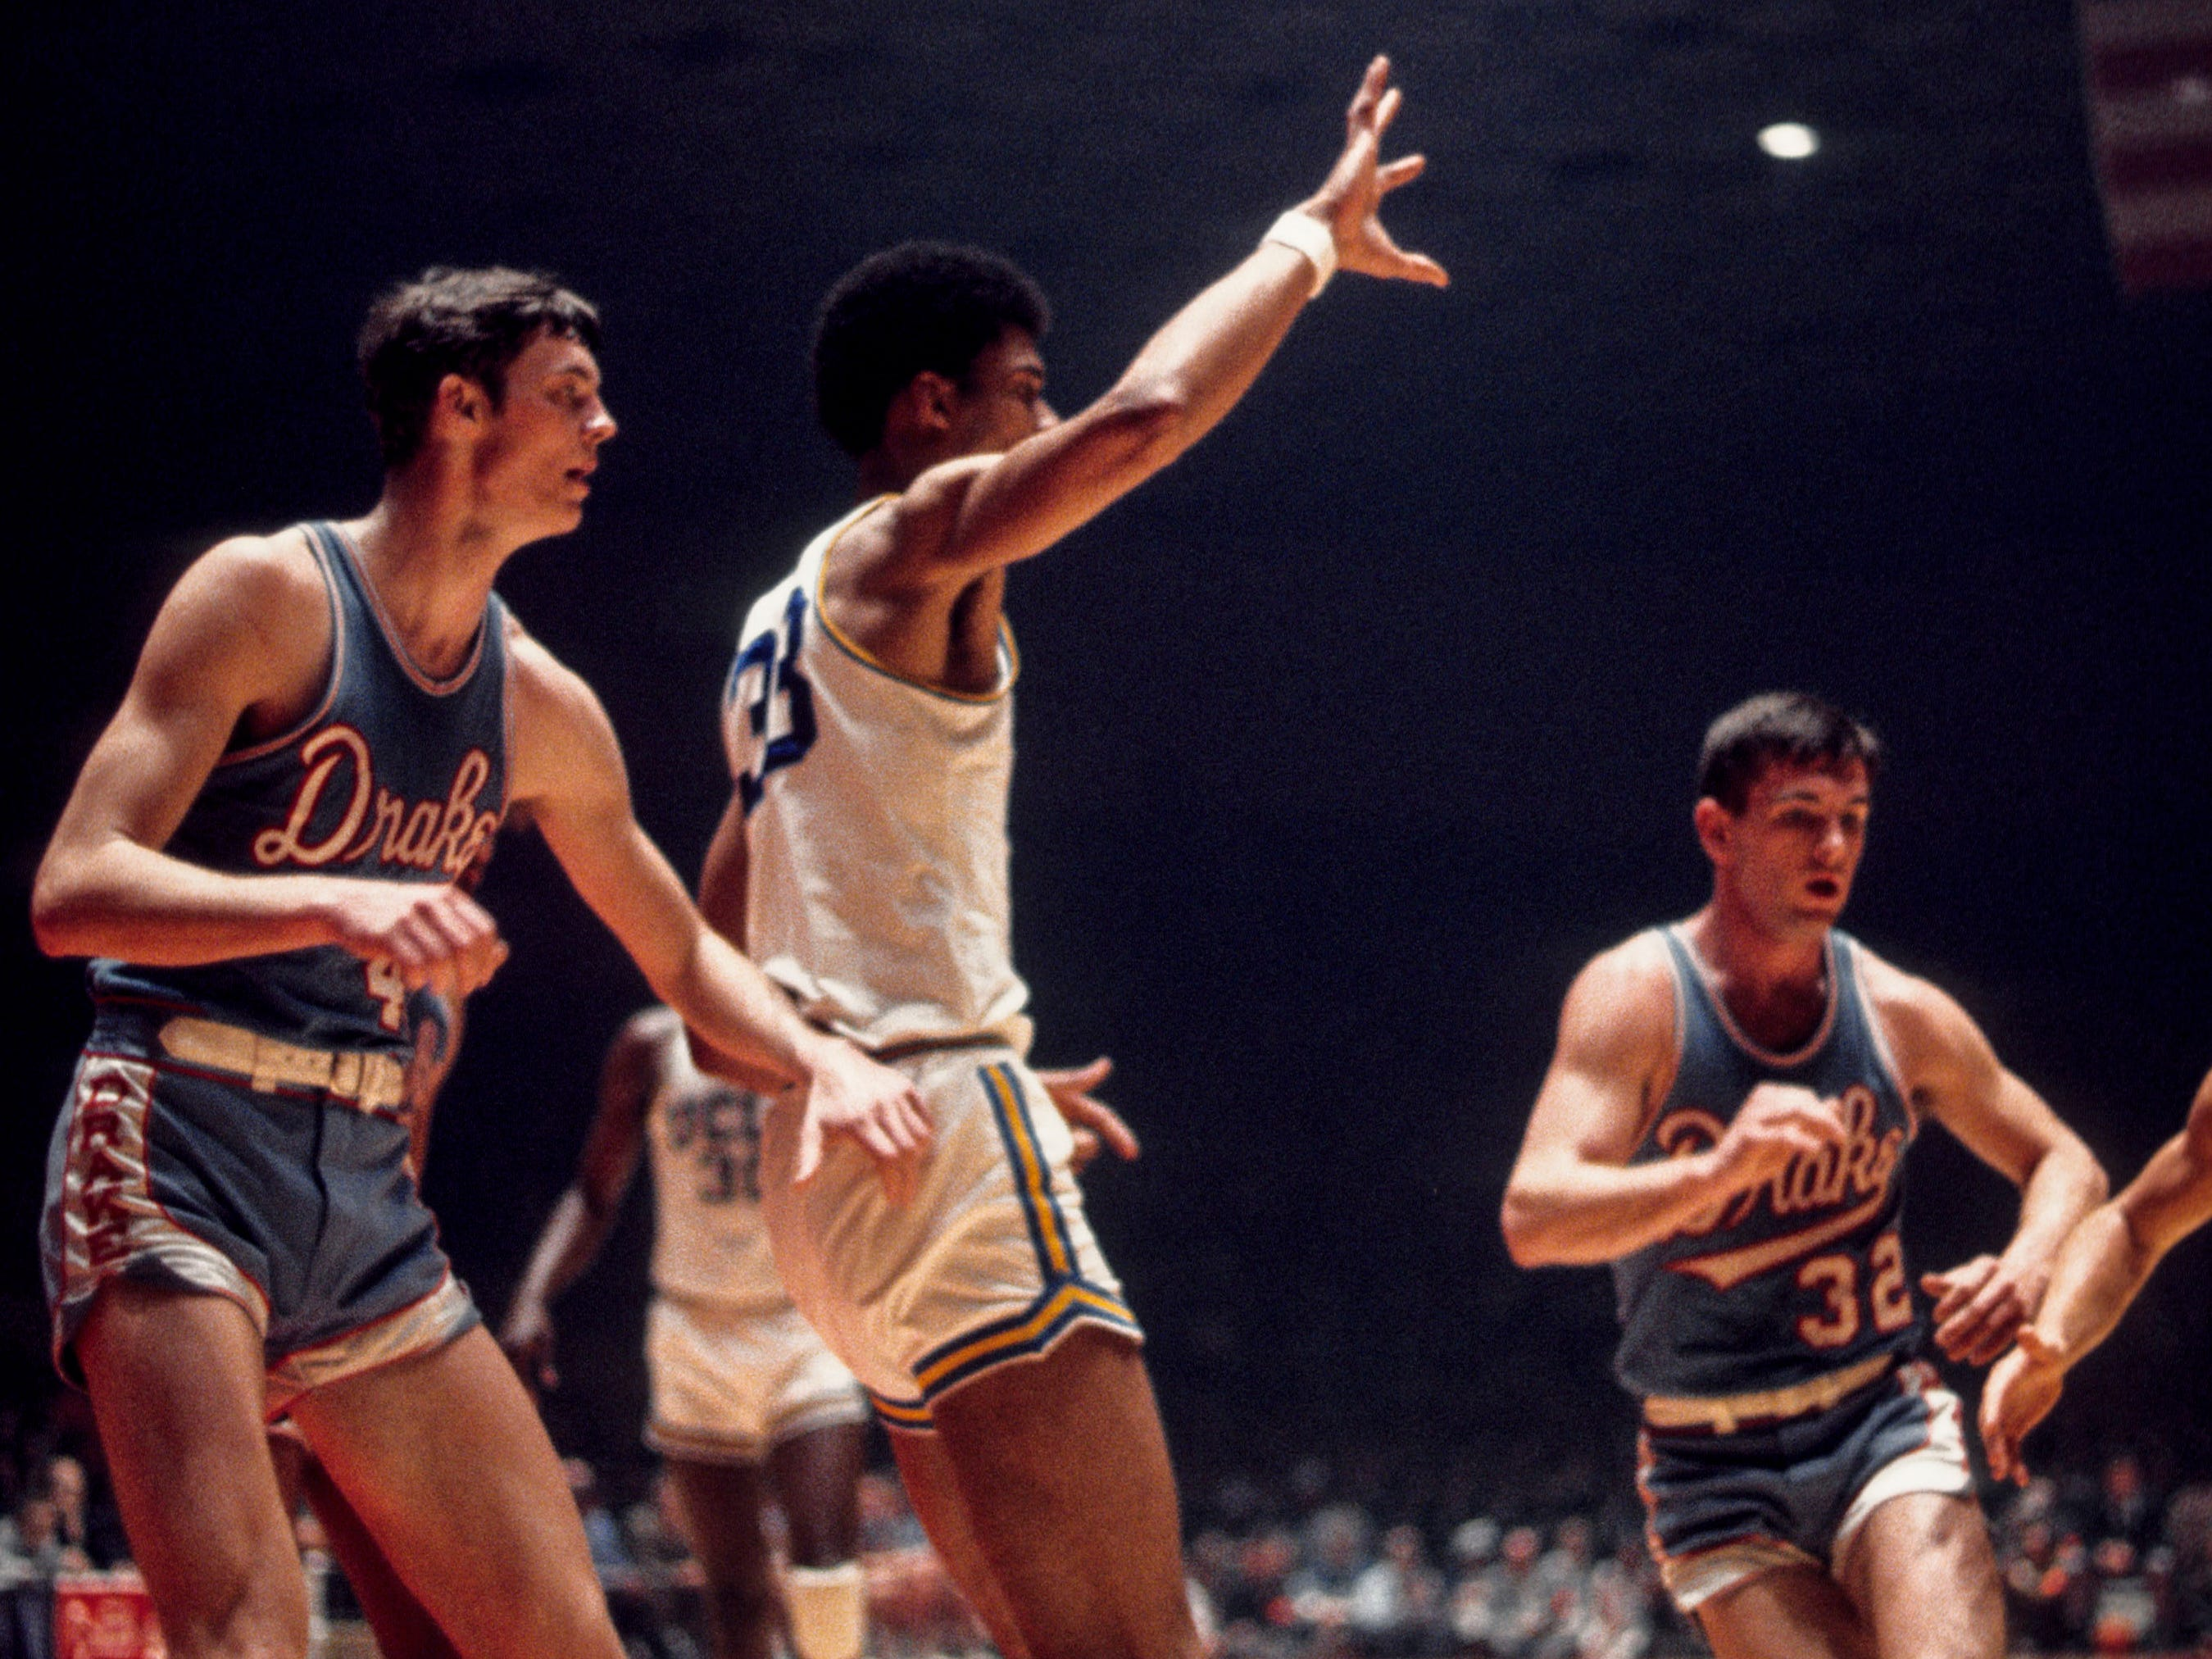 From 1969: UCLA Bruins center Lew Alcindor (33) in the post against Drake University's Rick Wanamaker, left, and  Don Draper (32) during the 1969 NCAA Tournament Final Four semifinals at Freedom Hall in Louisville, Kentucky. The Bruins defeated the Bulldogs, 85-82, and went on to win their third of seven straight NCAA titles.